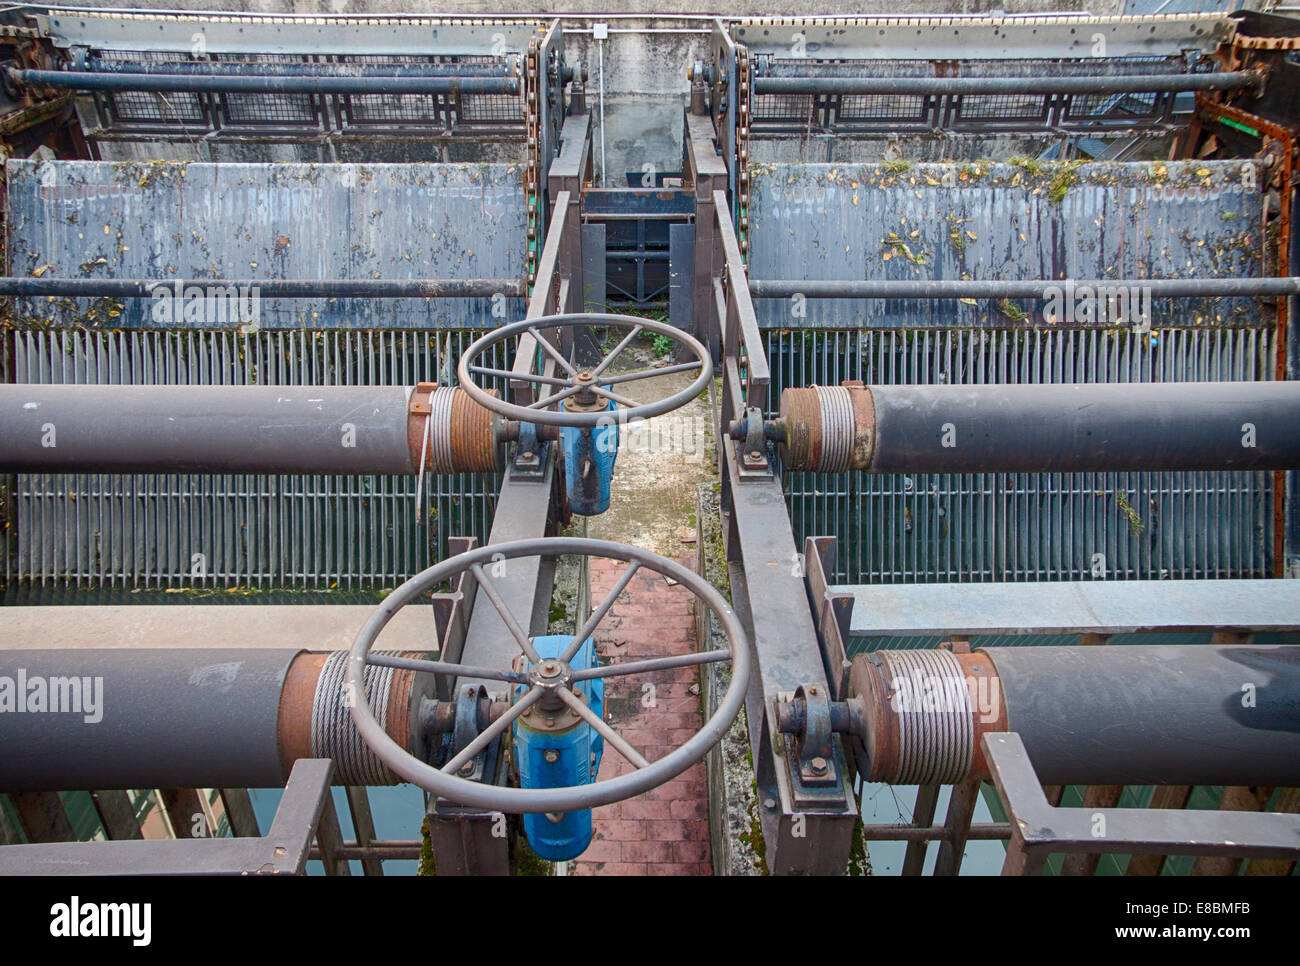 gate valve in Bologna - Stock Image